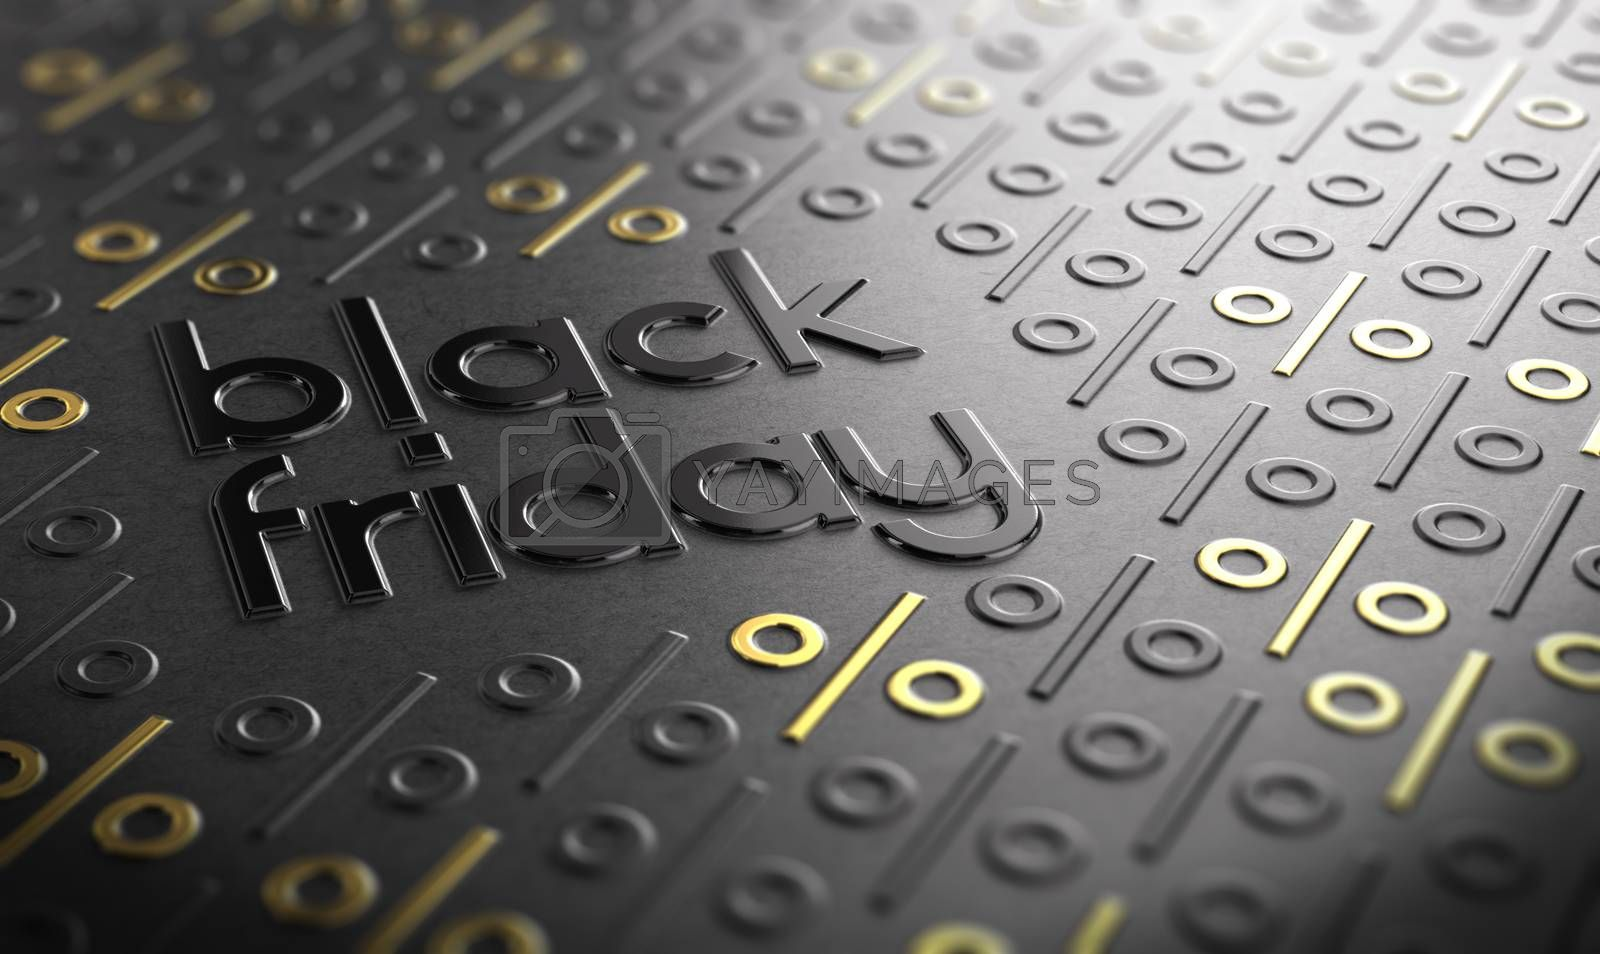 Text Black Friday embossed on paper texture with golden percent symbols. Sales concept.3D illustration.